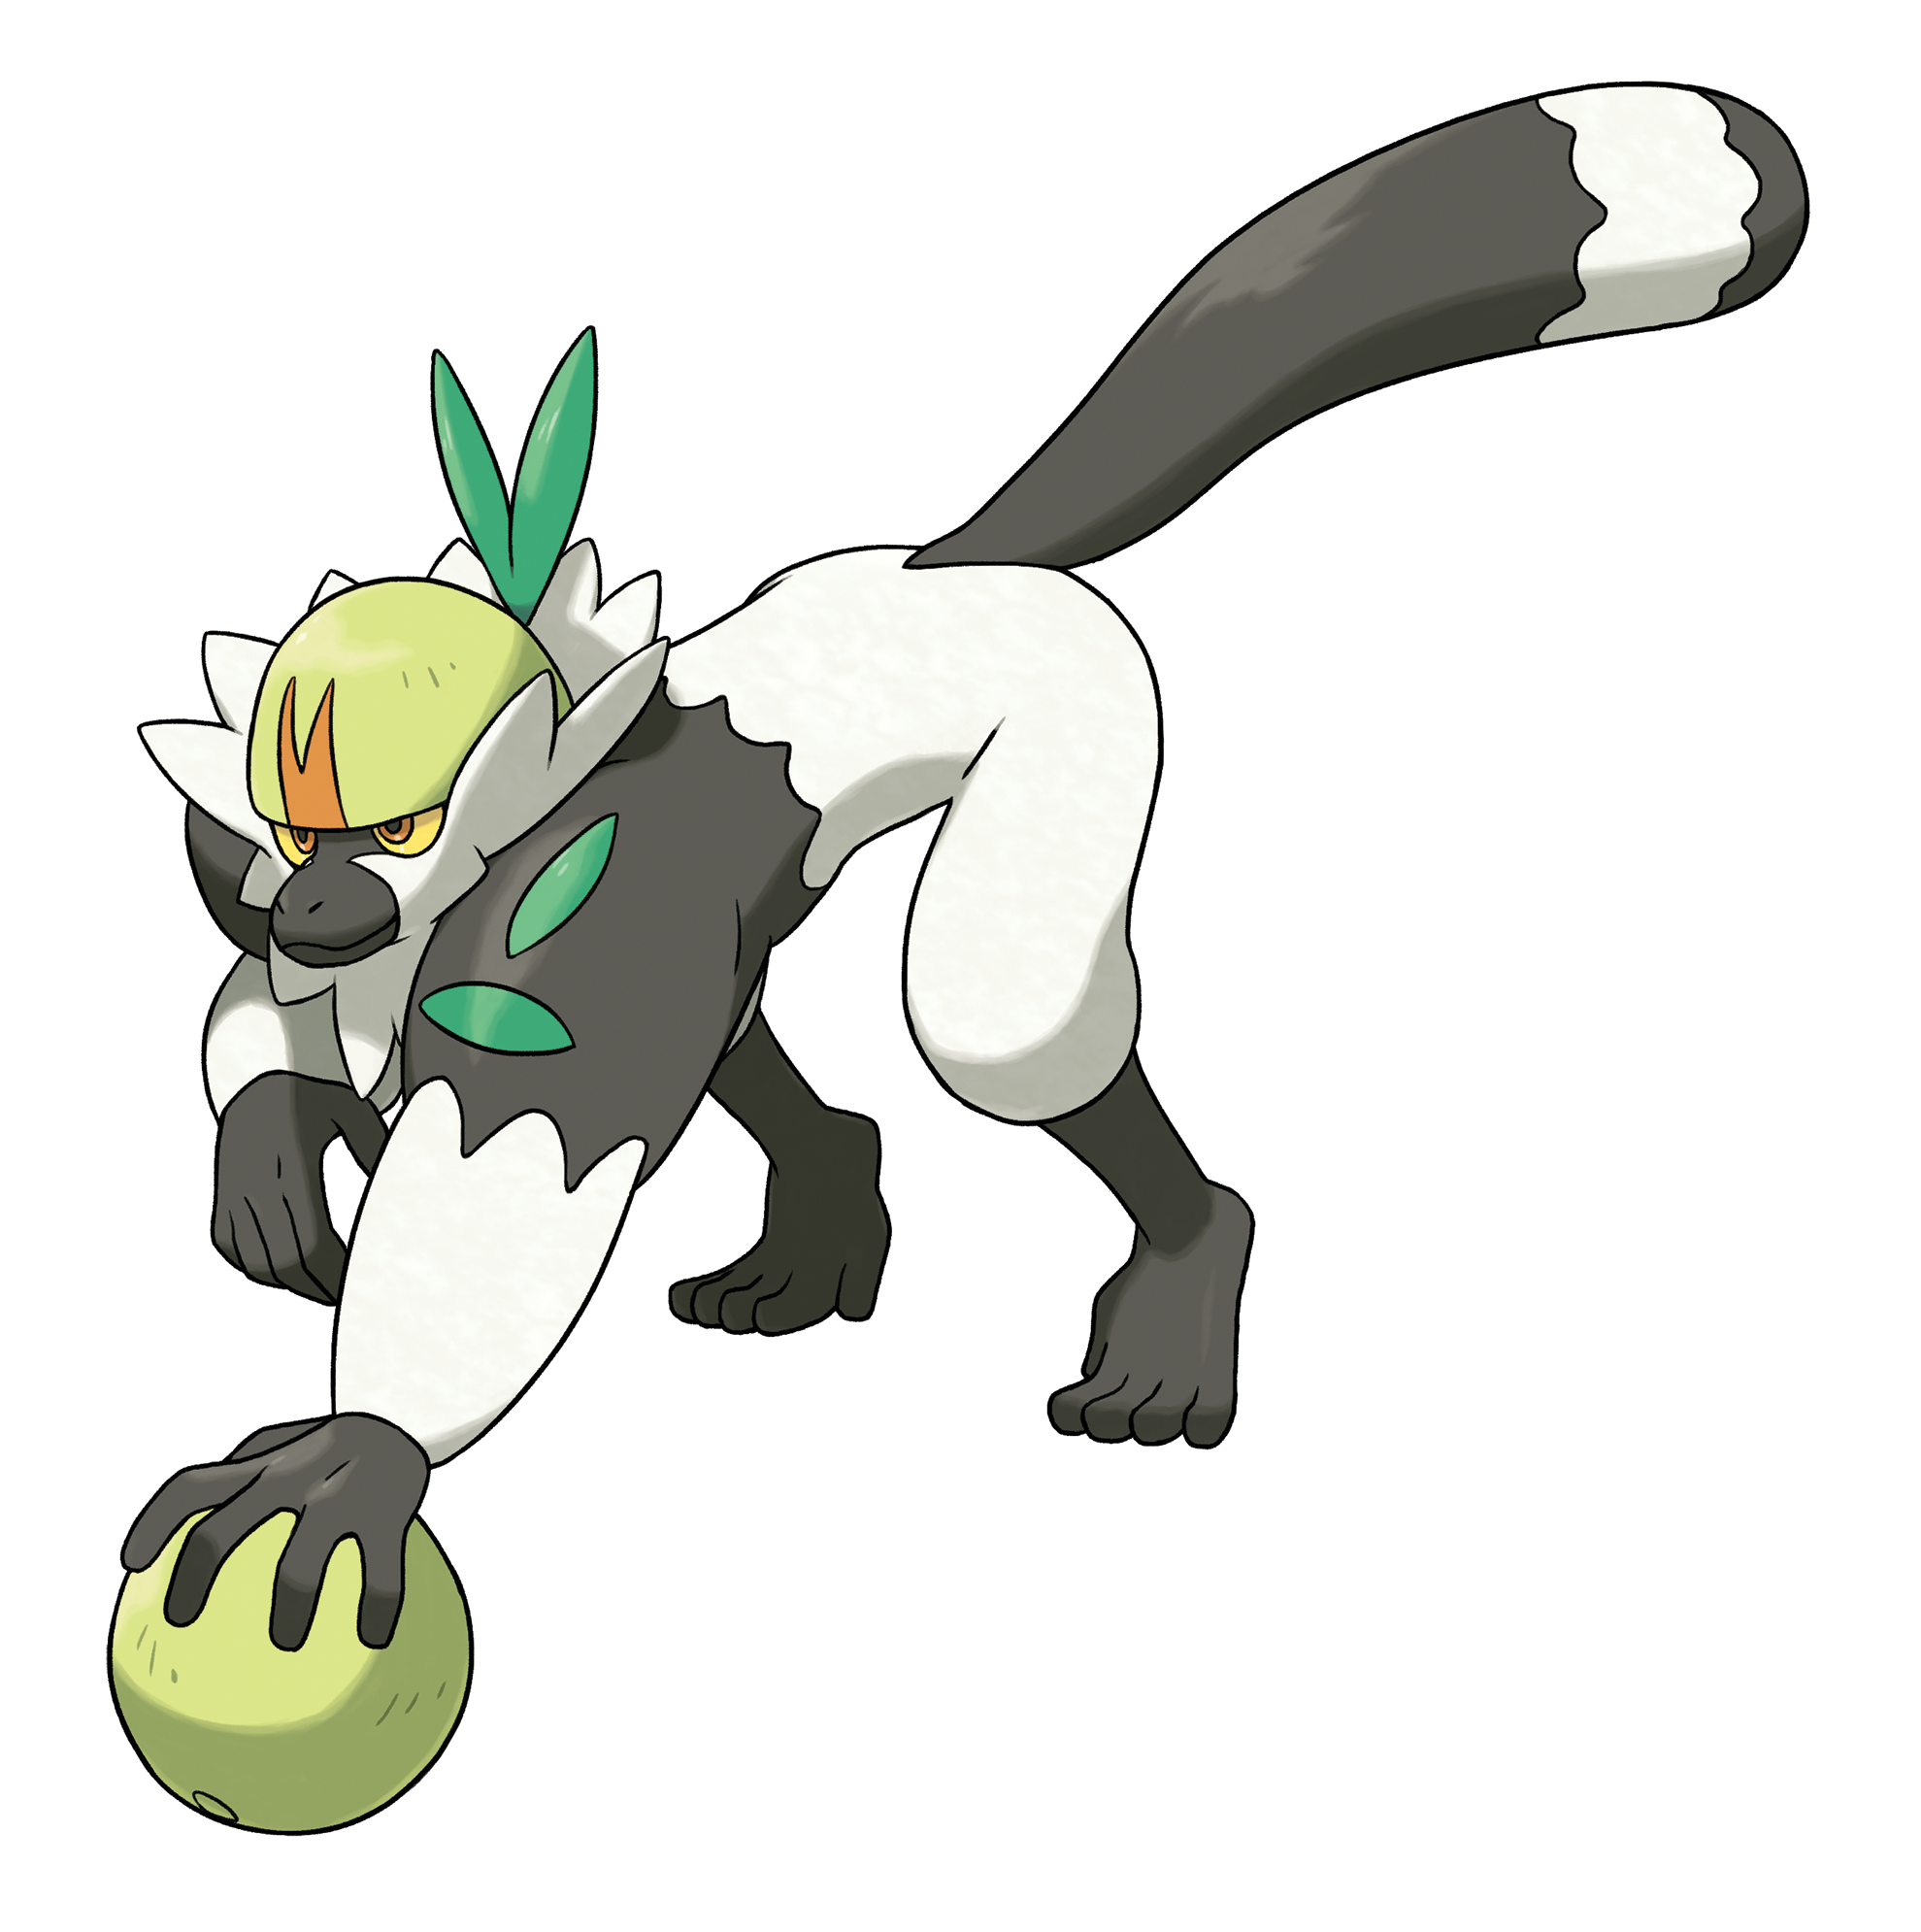 File:766Passimian.png